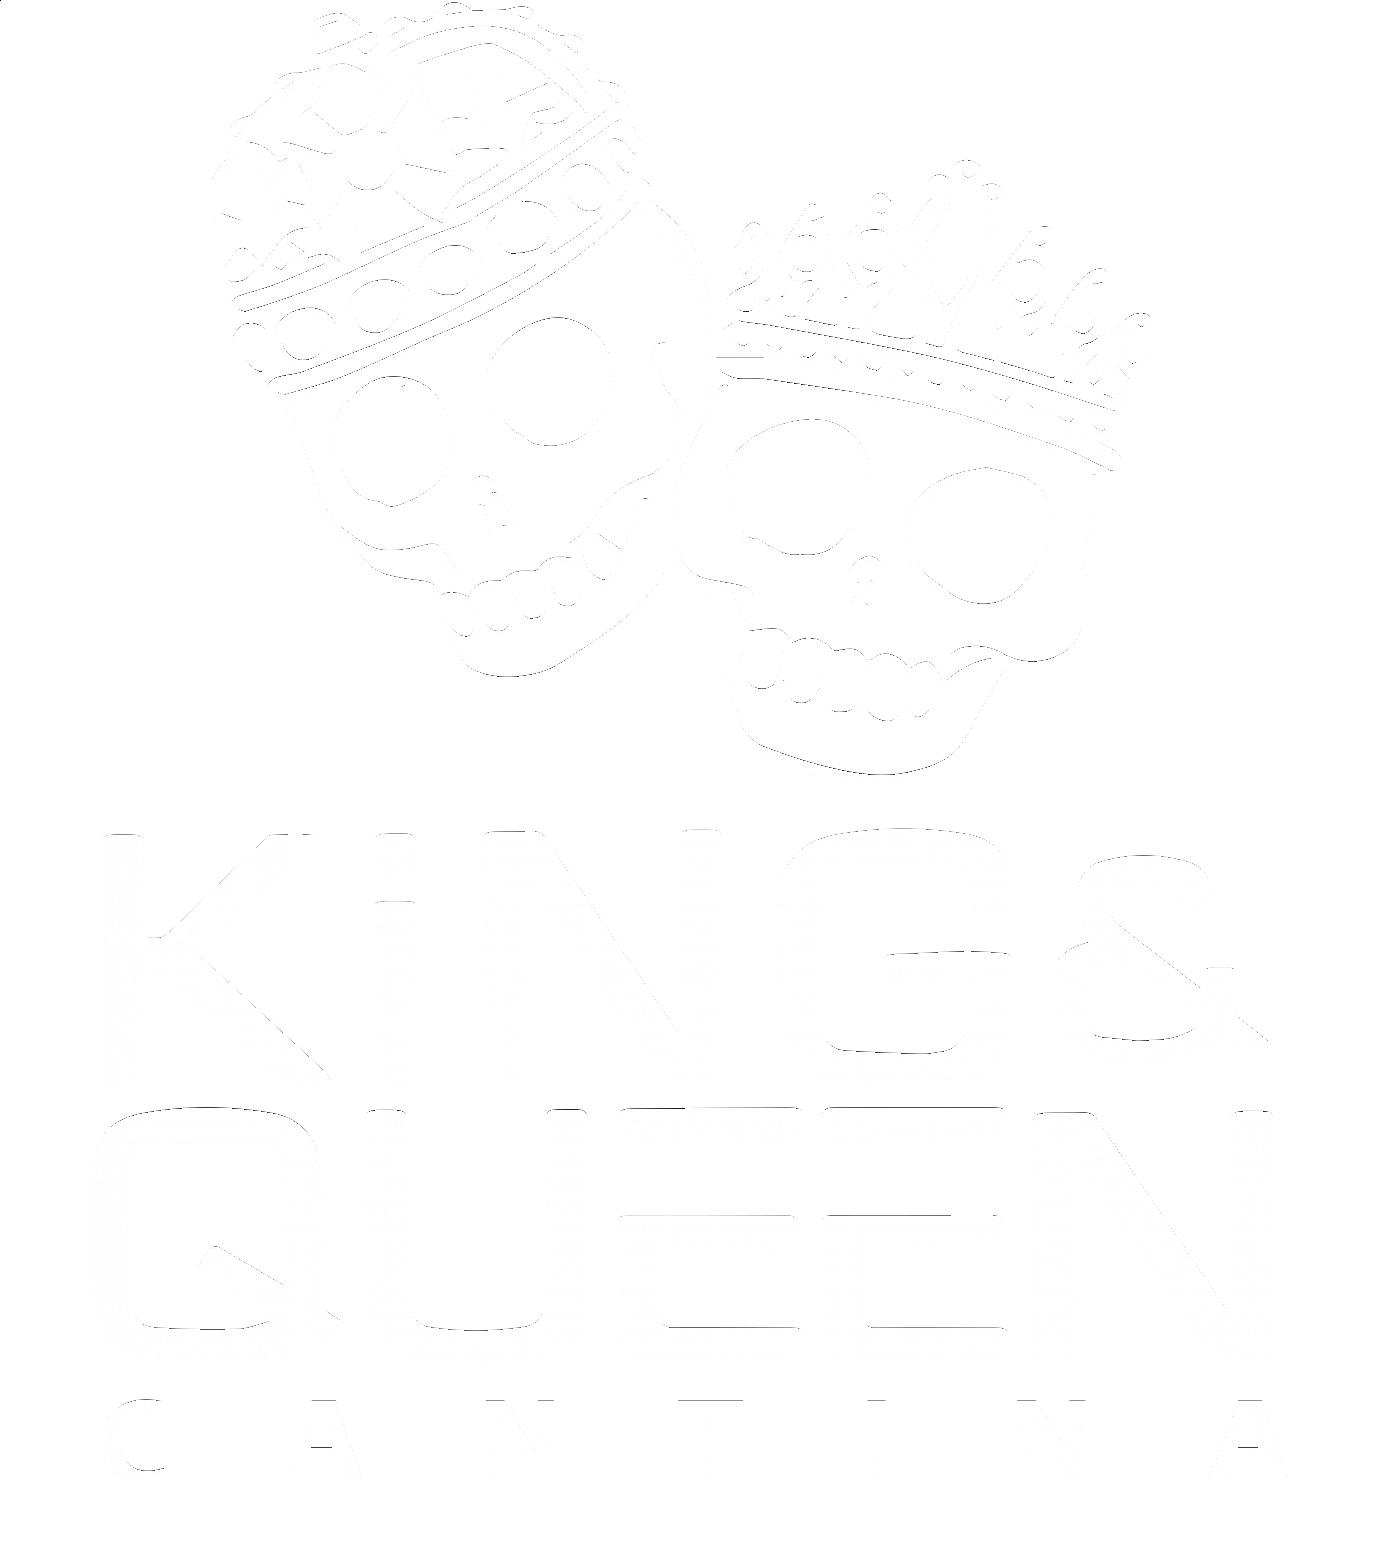 King and Queen Cantina logo white